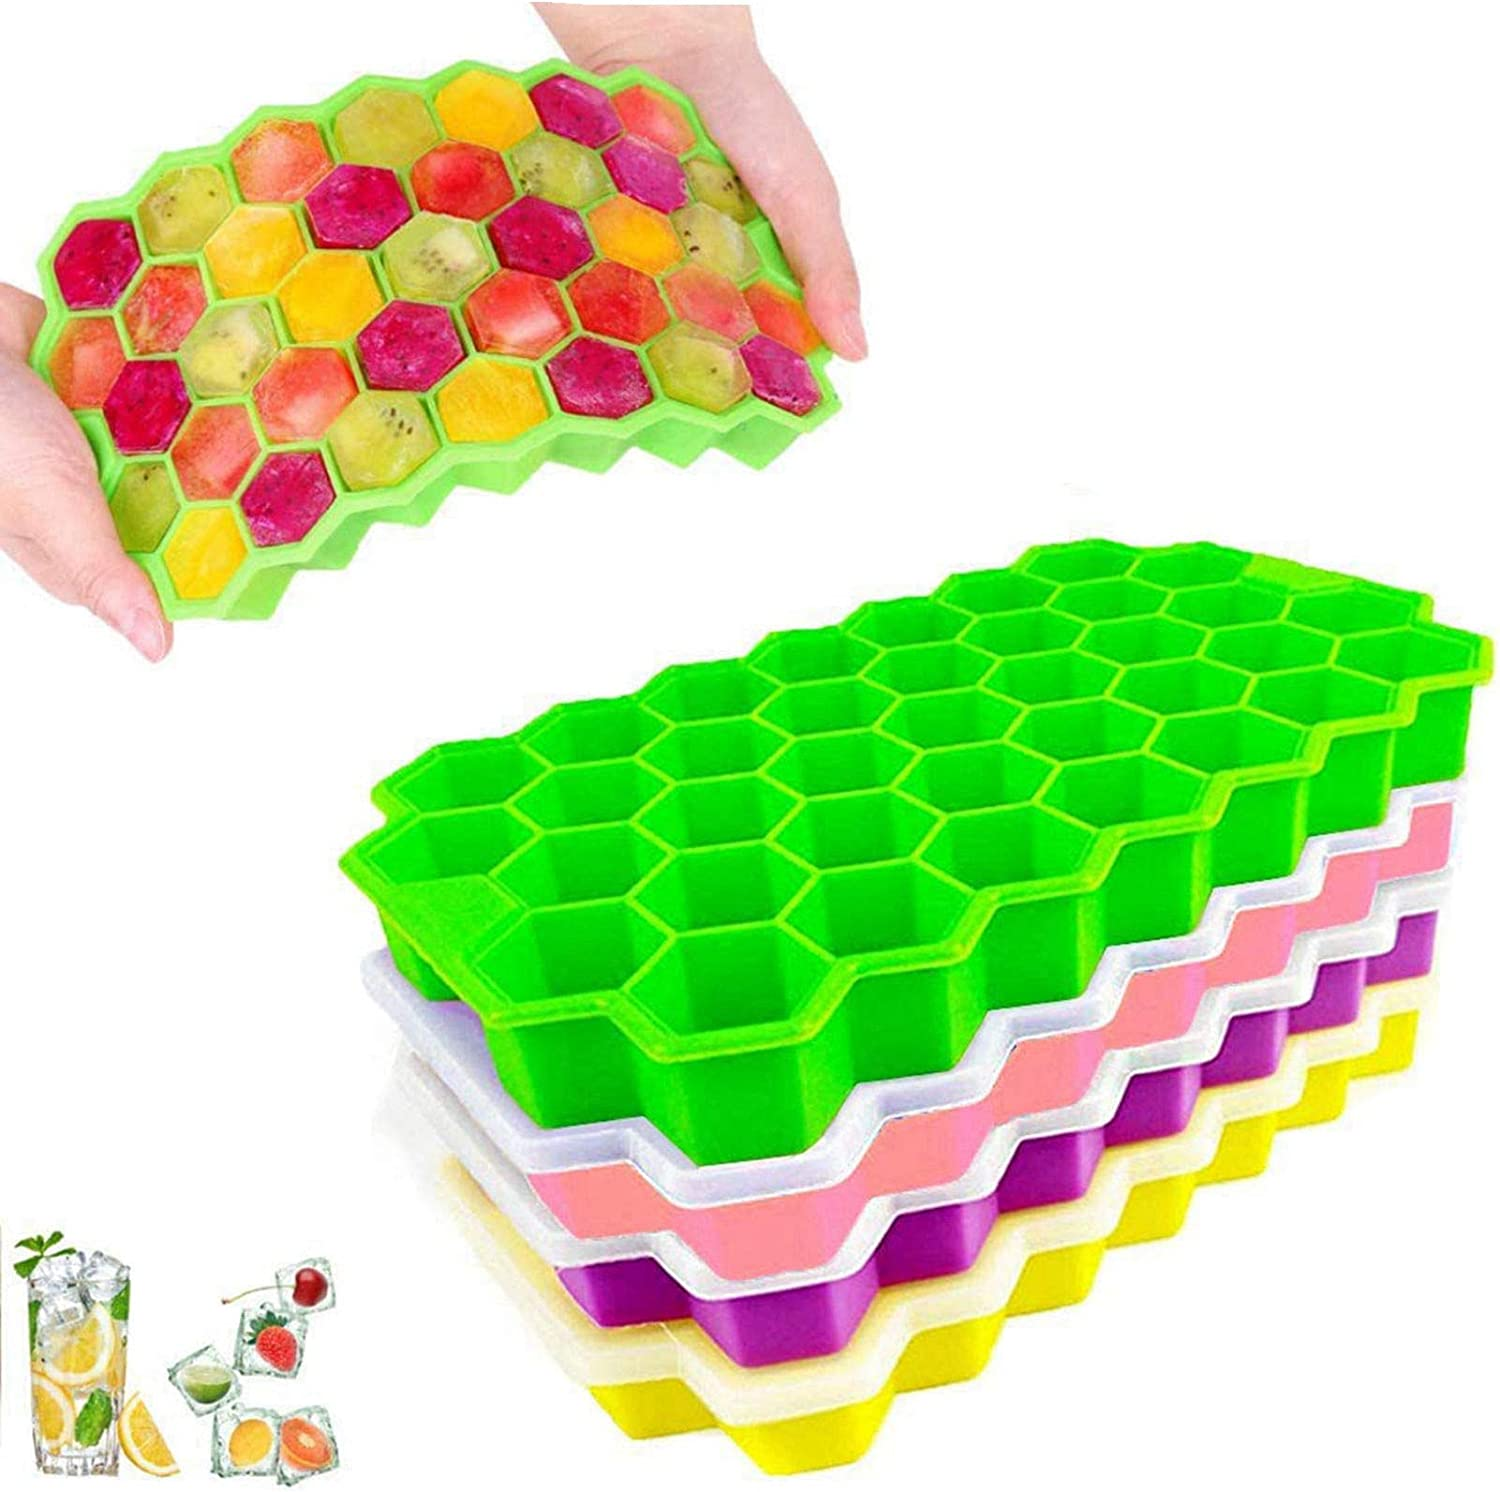 Silicone Ice Cube Tray with Lids BPA Free Food Grade Flexible Ice Cube Molds for Whiskey Storage Cocktail Beverages Easy Released 4-Pack 148 Ice Cubes